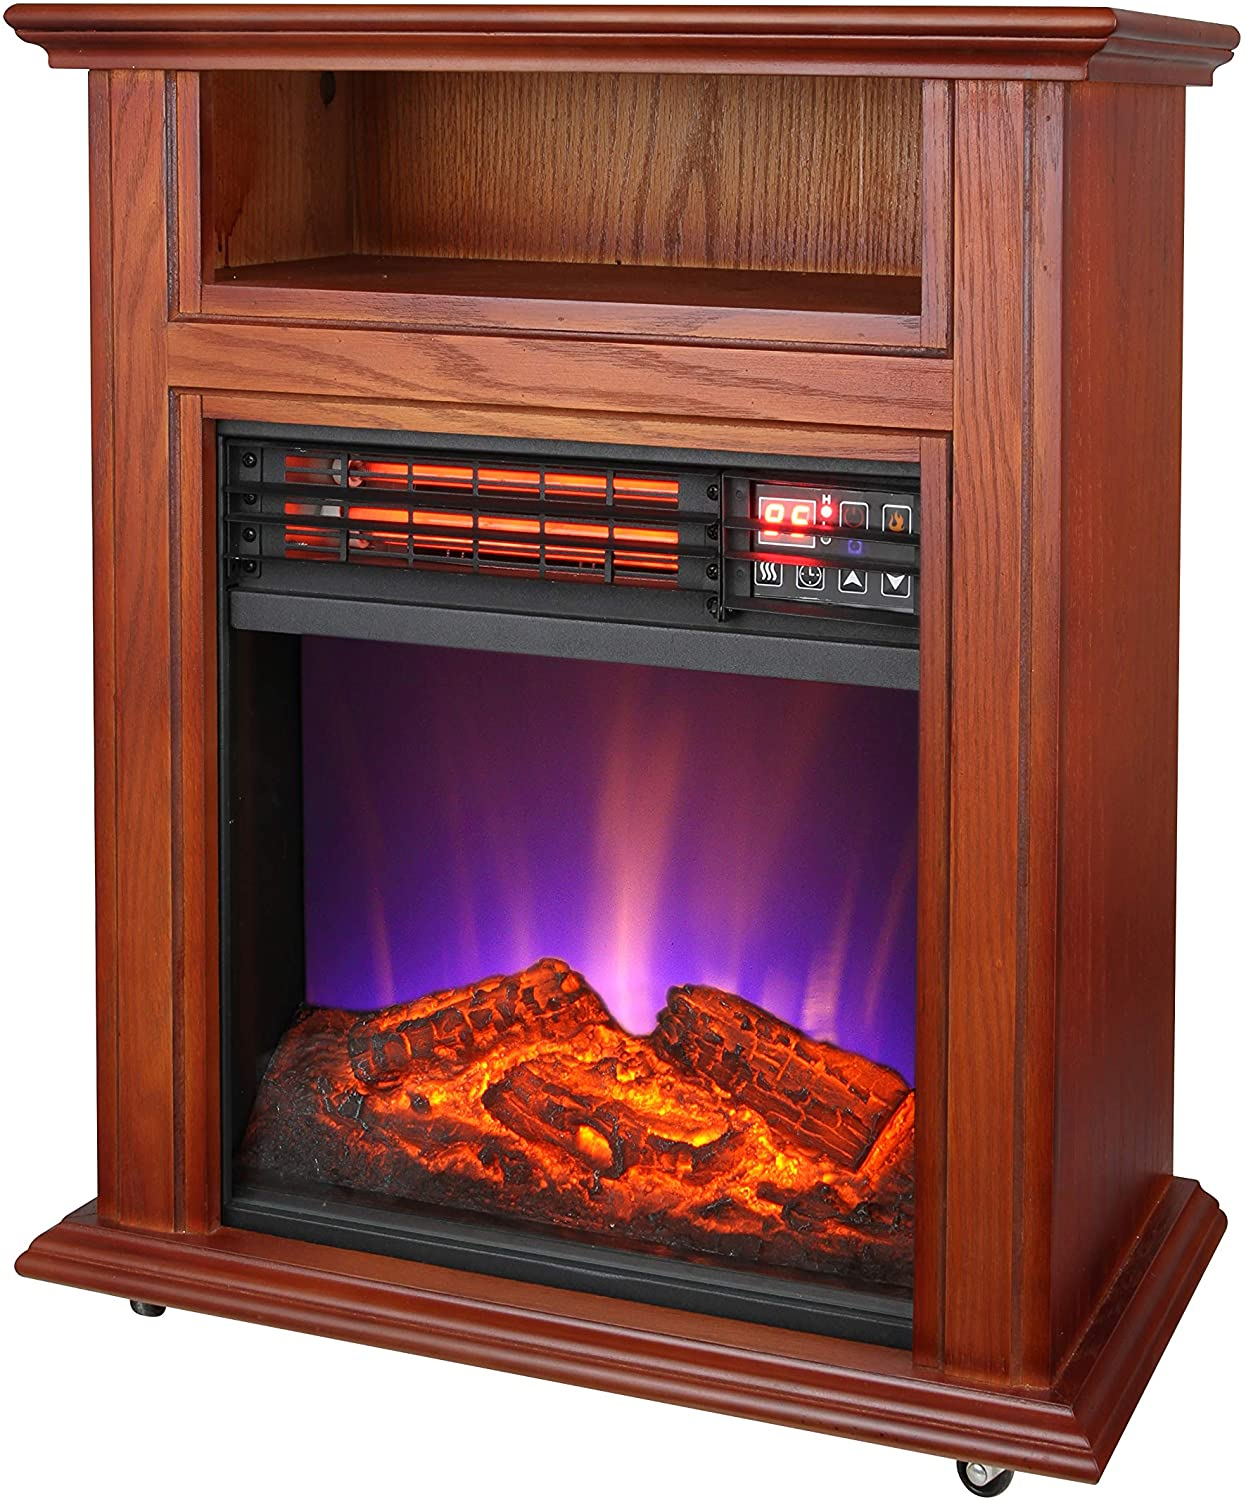 Charm Glow Electric Fireplace Best Of fort Glow Qf4561r Electric Quartz Fireplace